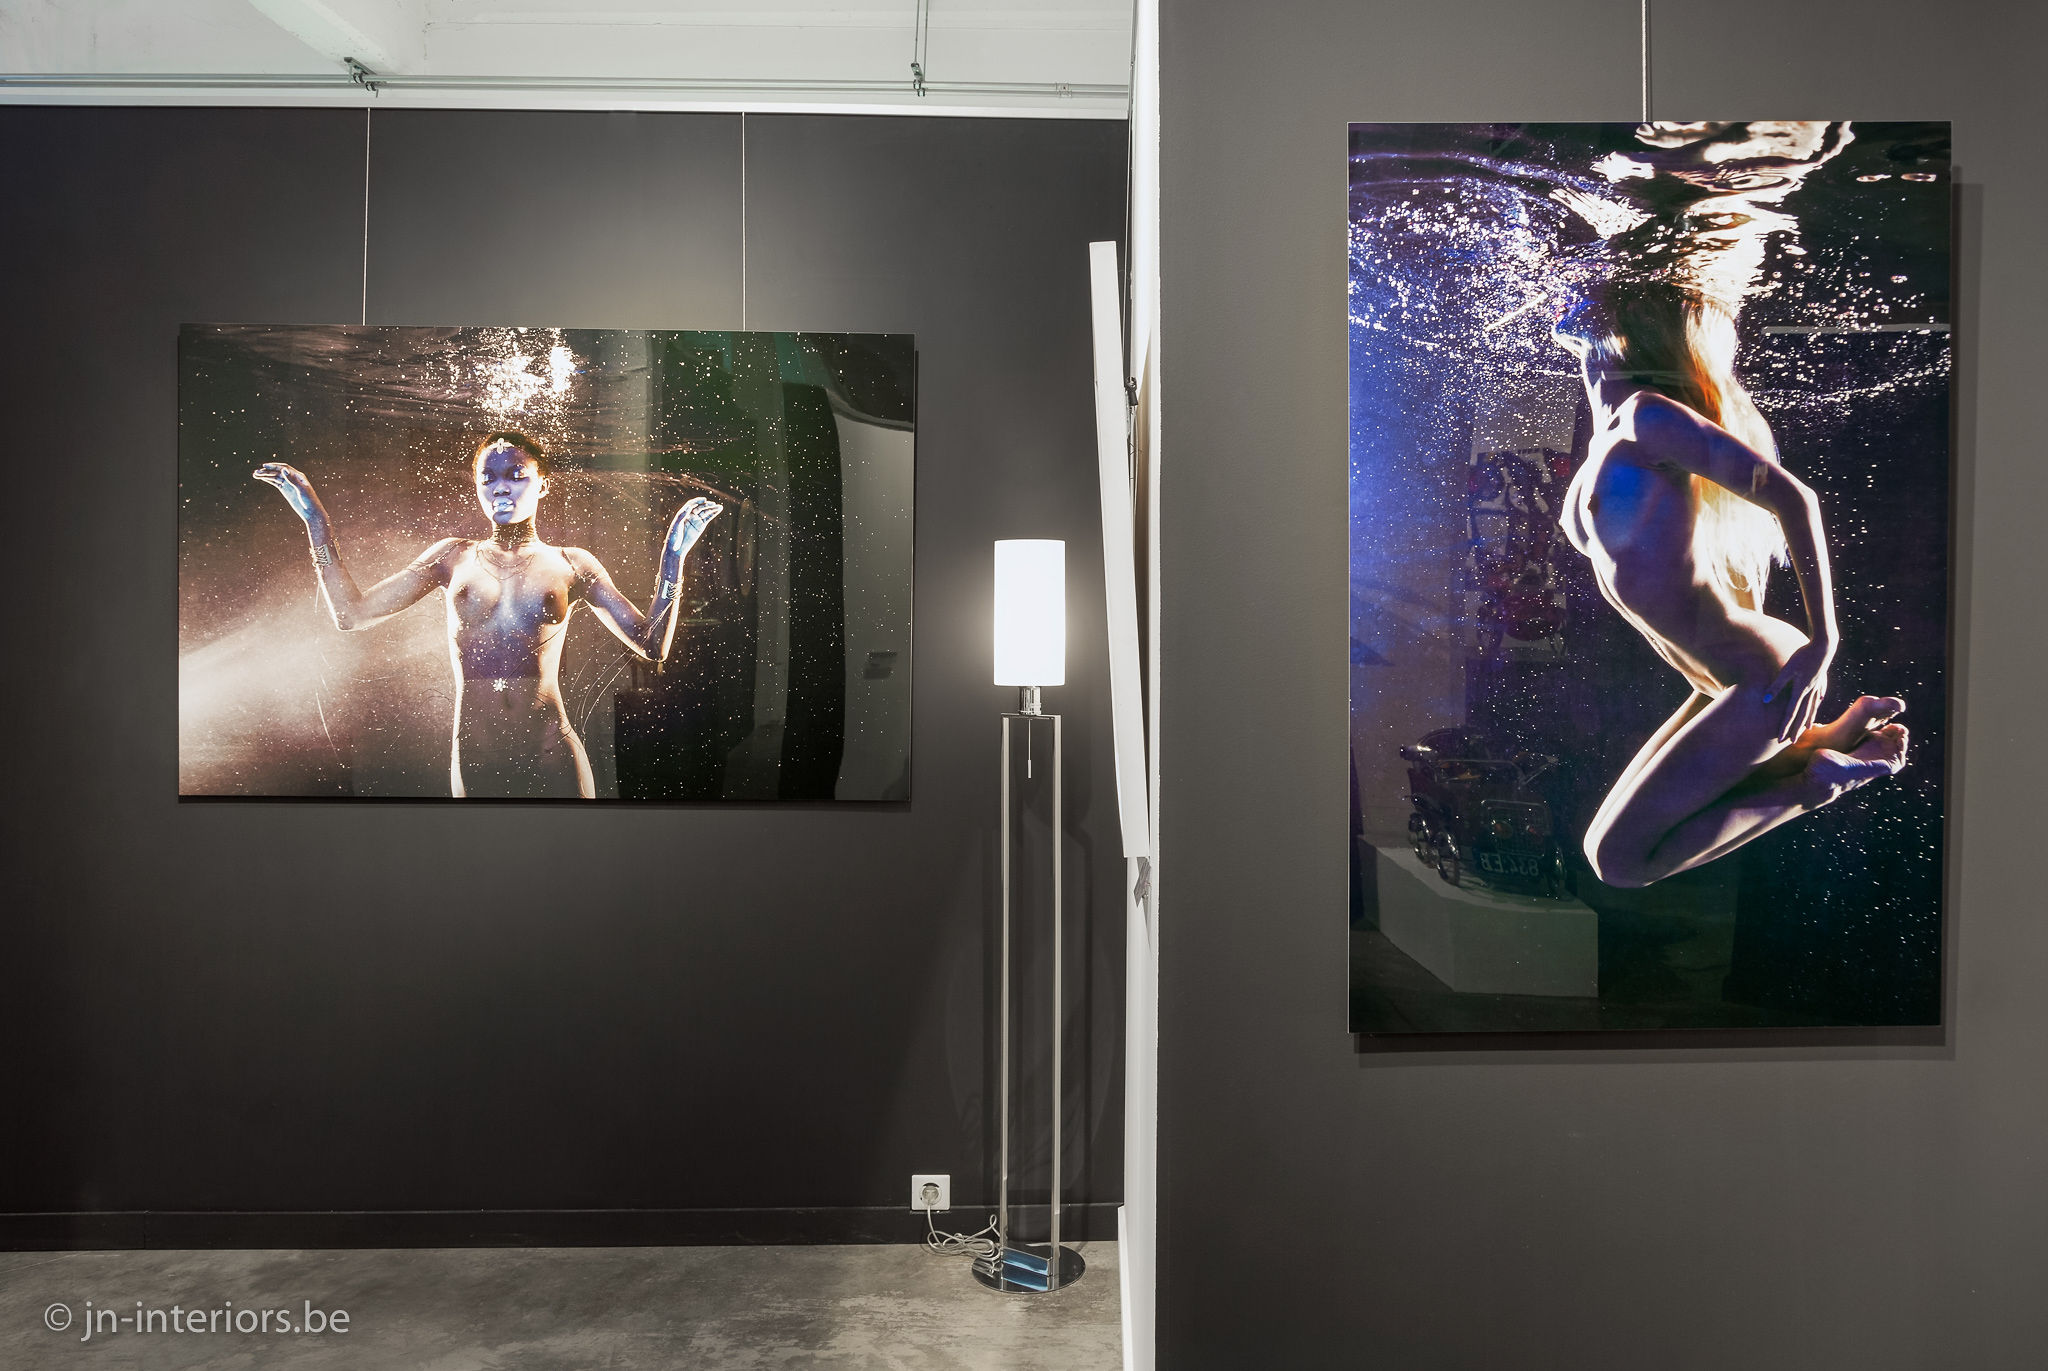 photo sous l'eau, photo de nu, photographe belge, Harry Fayt, magasin de décoration, exposition d'art, galerie d'art, jn interiors, jour et nuit liège verviers